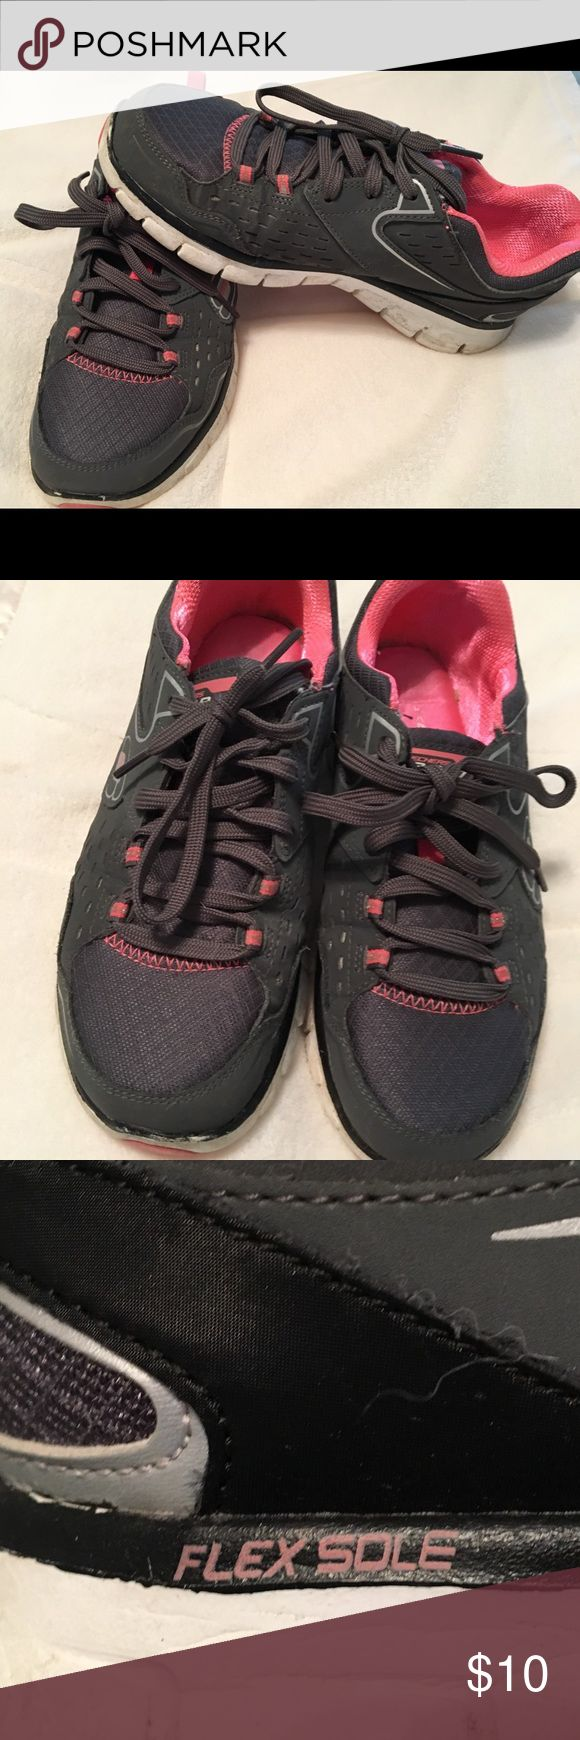 EUC Size 7 memory foam sketcher sneakers Super comfy Sketchers. Dark grey and pink. Only wore twice. I lost 45 pounds and went down a size. Shows very little signs of use. A little dirt on soles as shown. I'm sure with bleach and a toothbrush they will look brand new. Skechers Shoes Sneakers